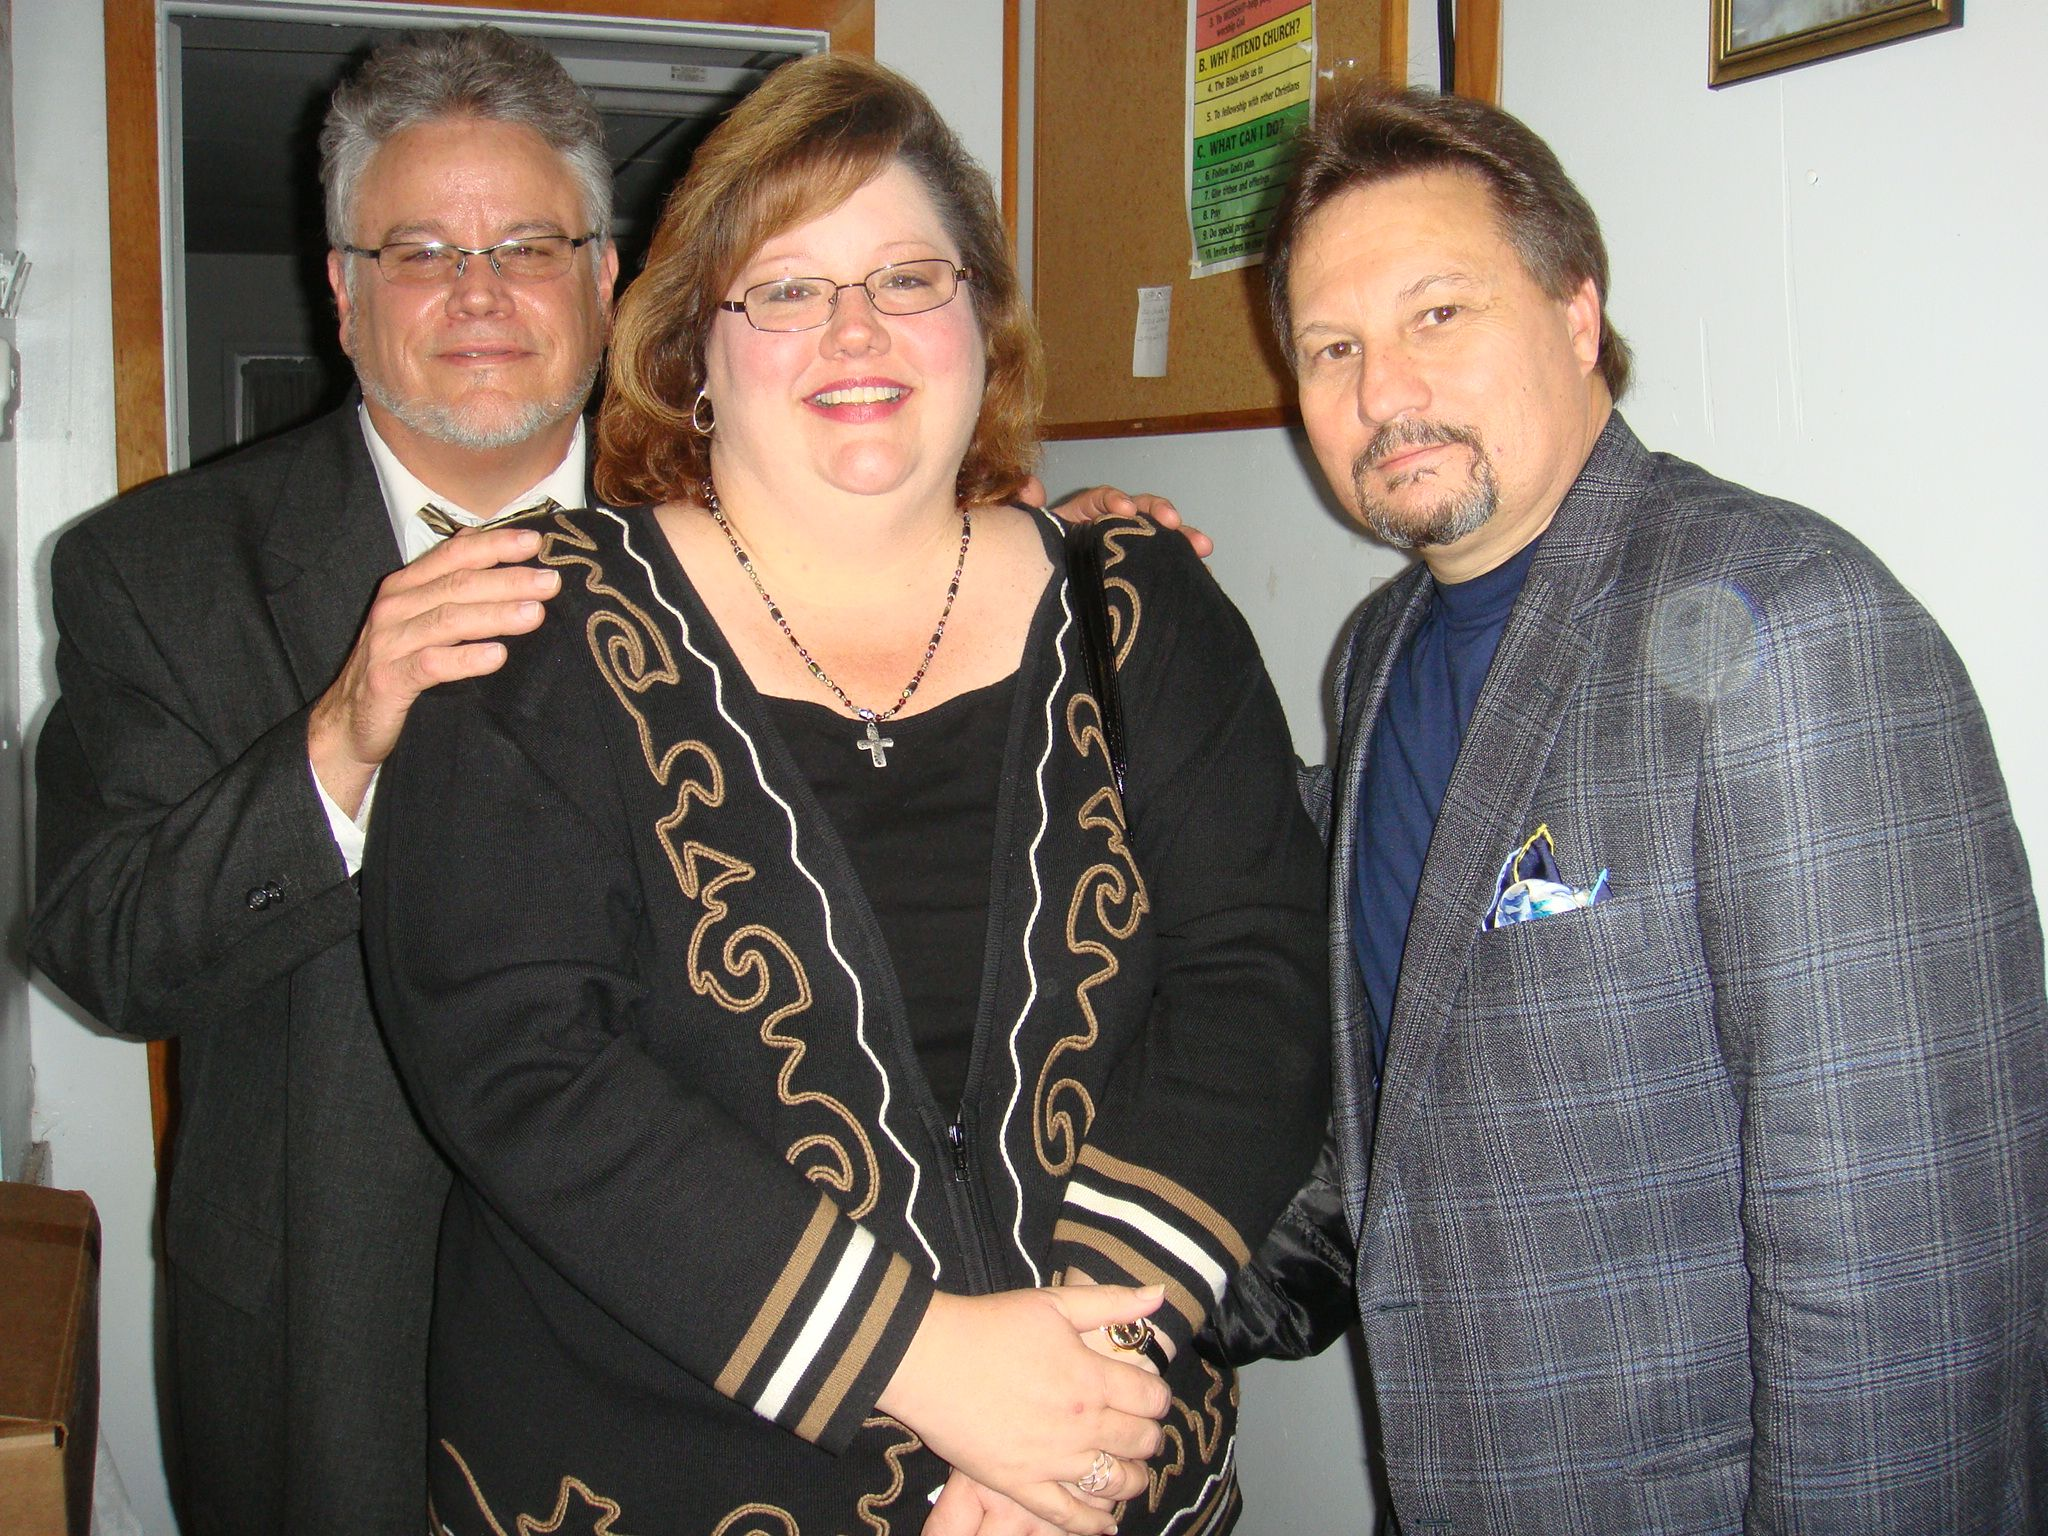 meeting evangelist donnie swaggart was so humbling